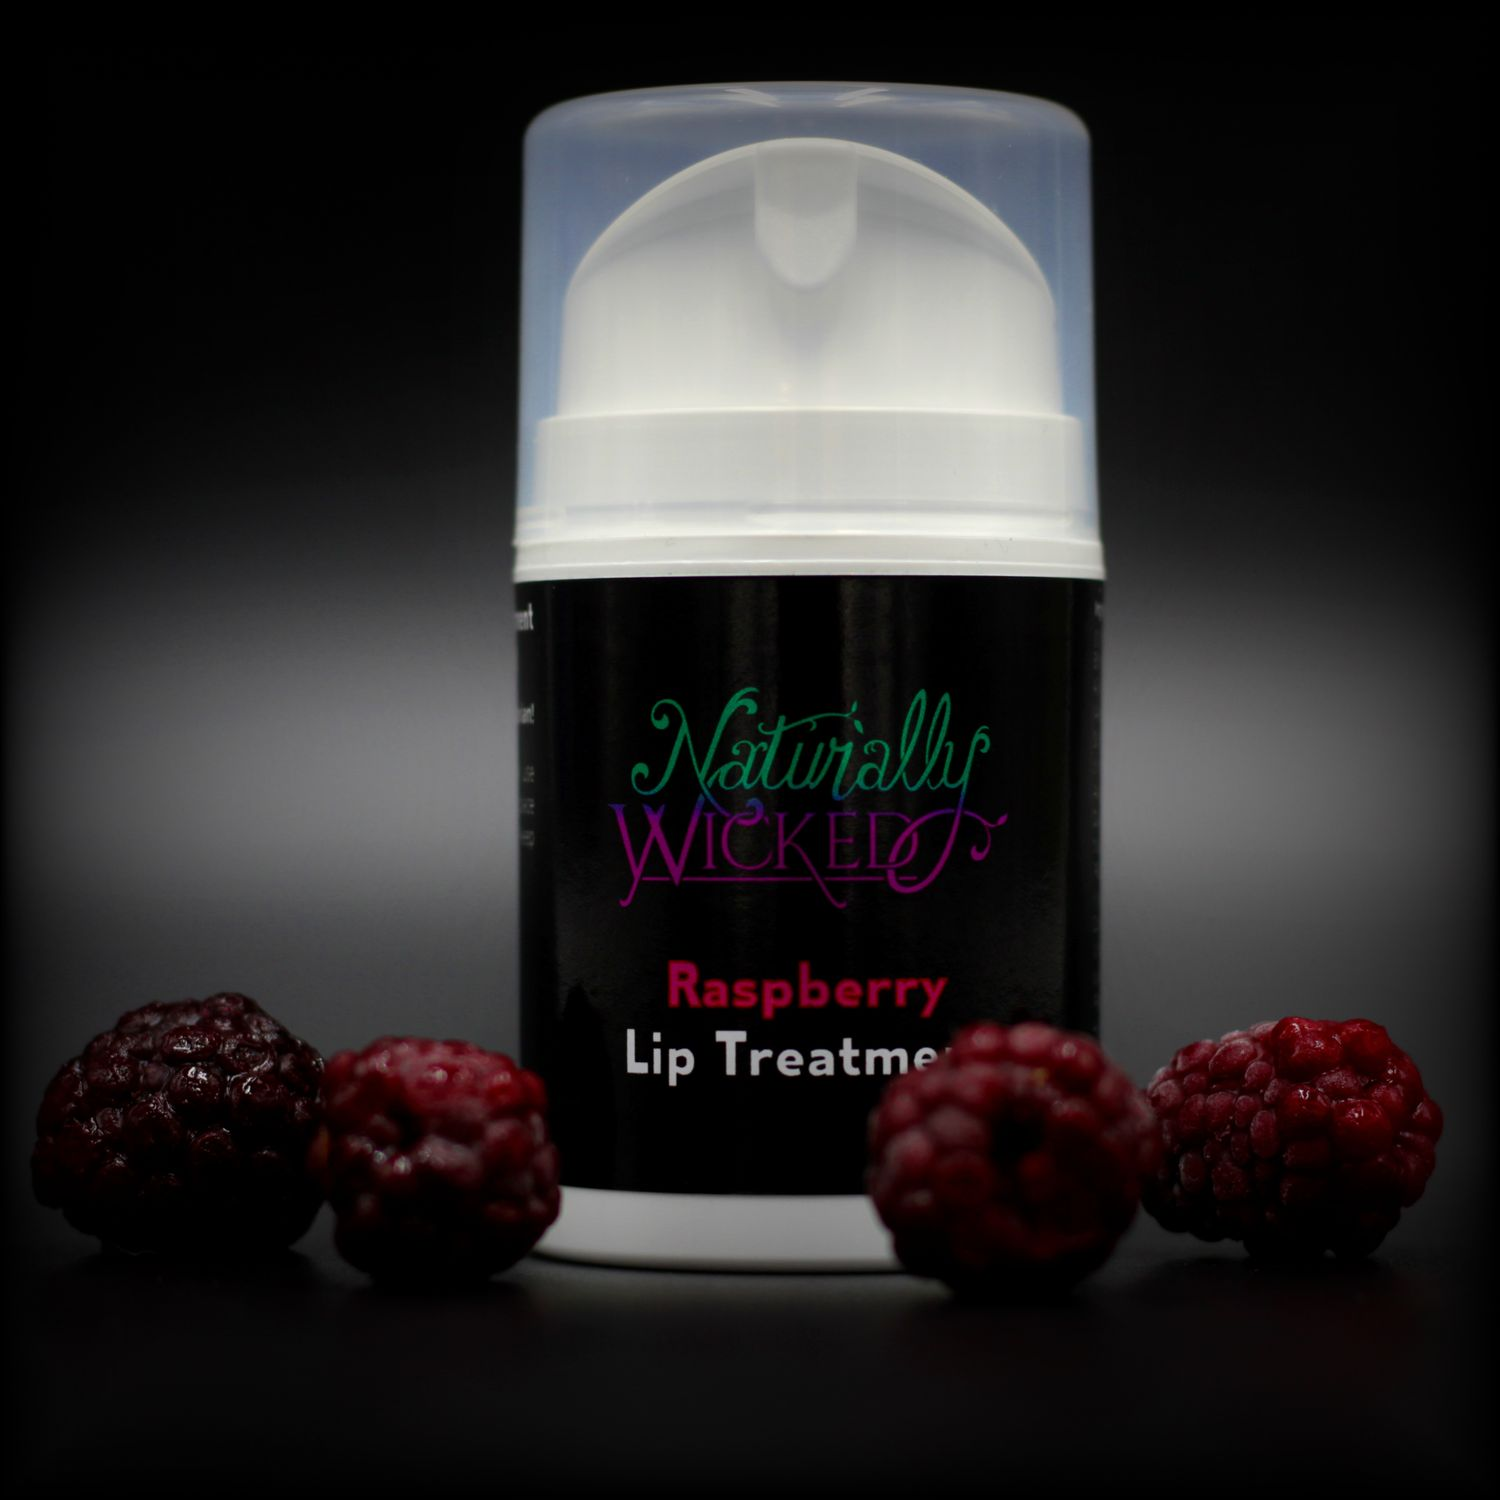 Naturally Wicked Raspberry Lip Treatment Surrounded By Dark Red Luscious Raspberries